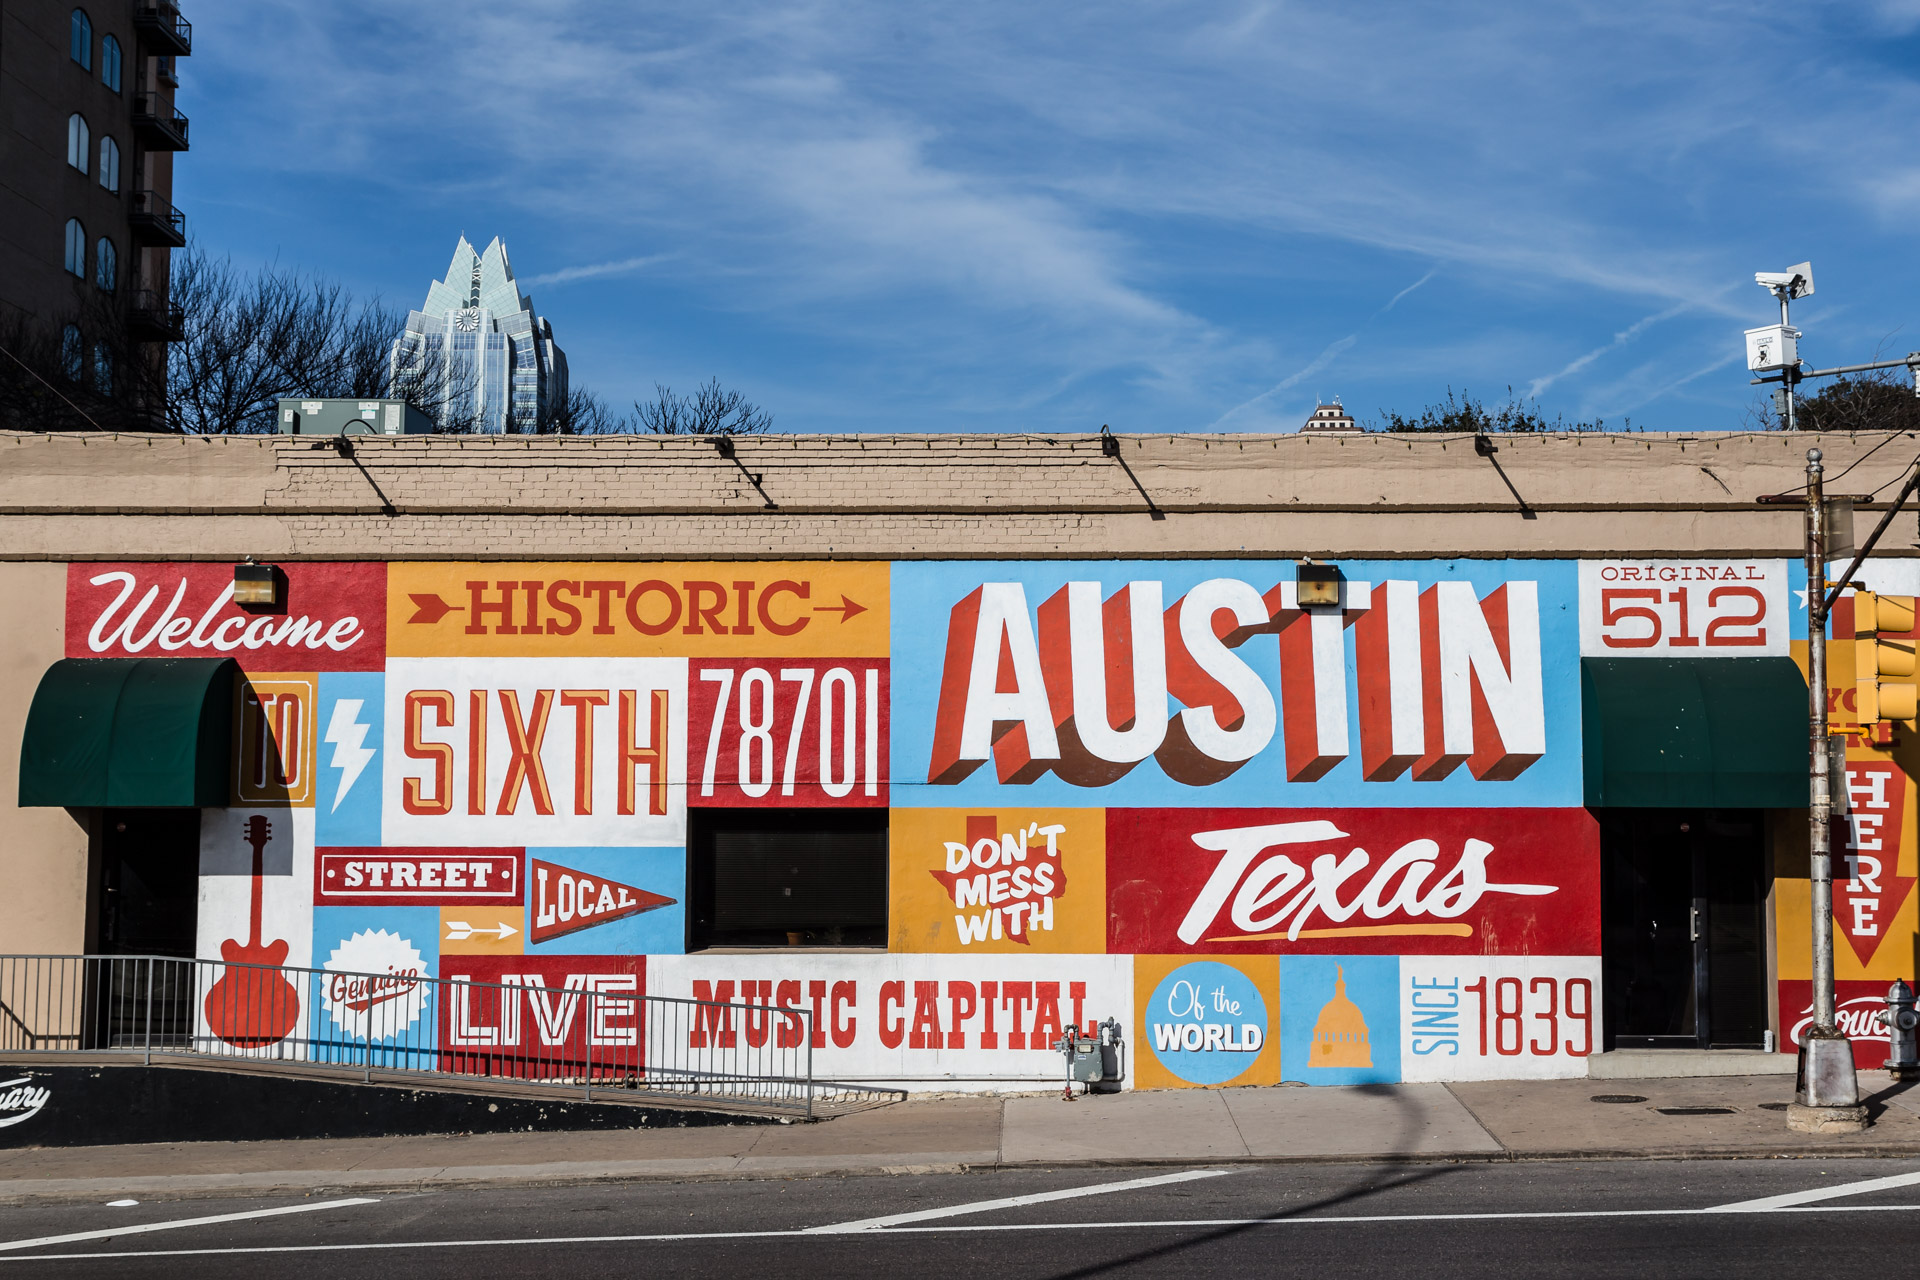 Austin Street Art (historic sixth)